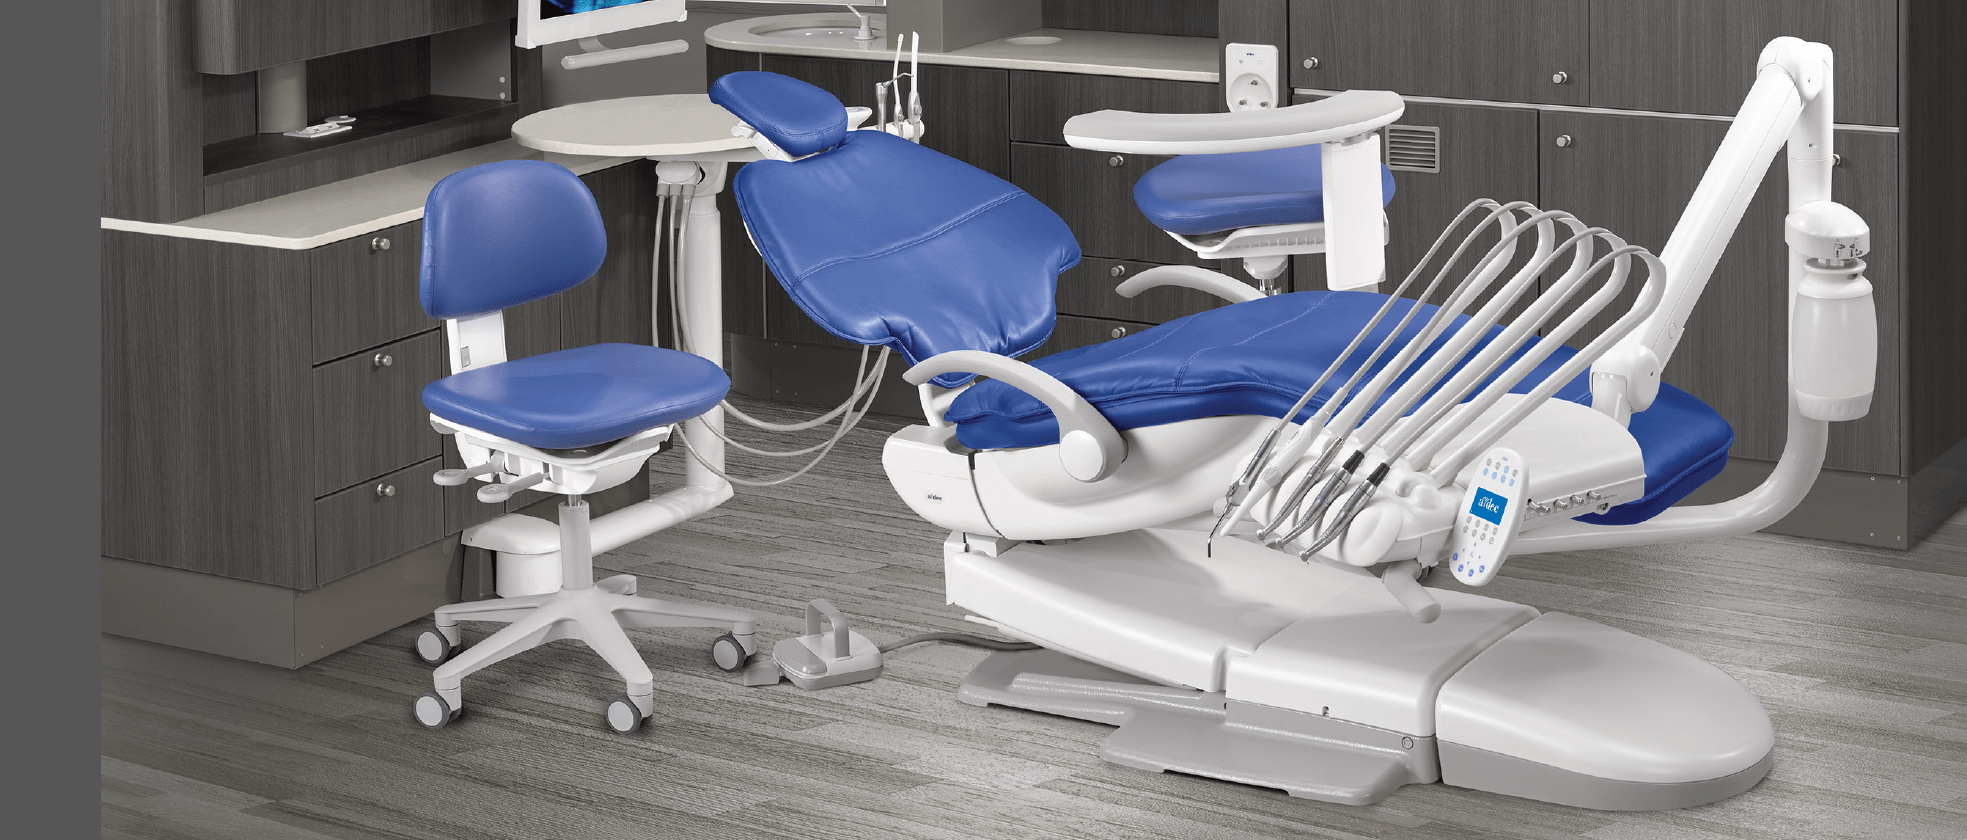 Used Dental Chairs Dental Equipment Technology Nashville Dental Inc